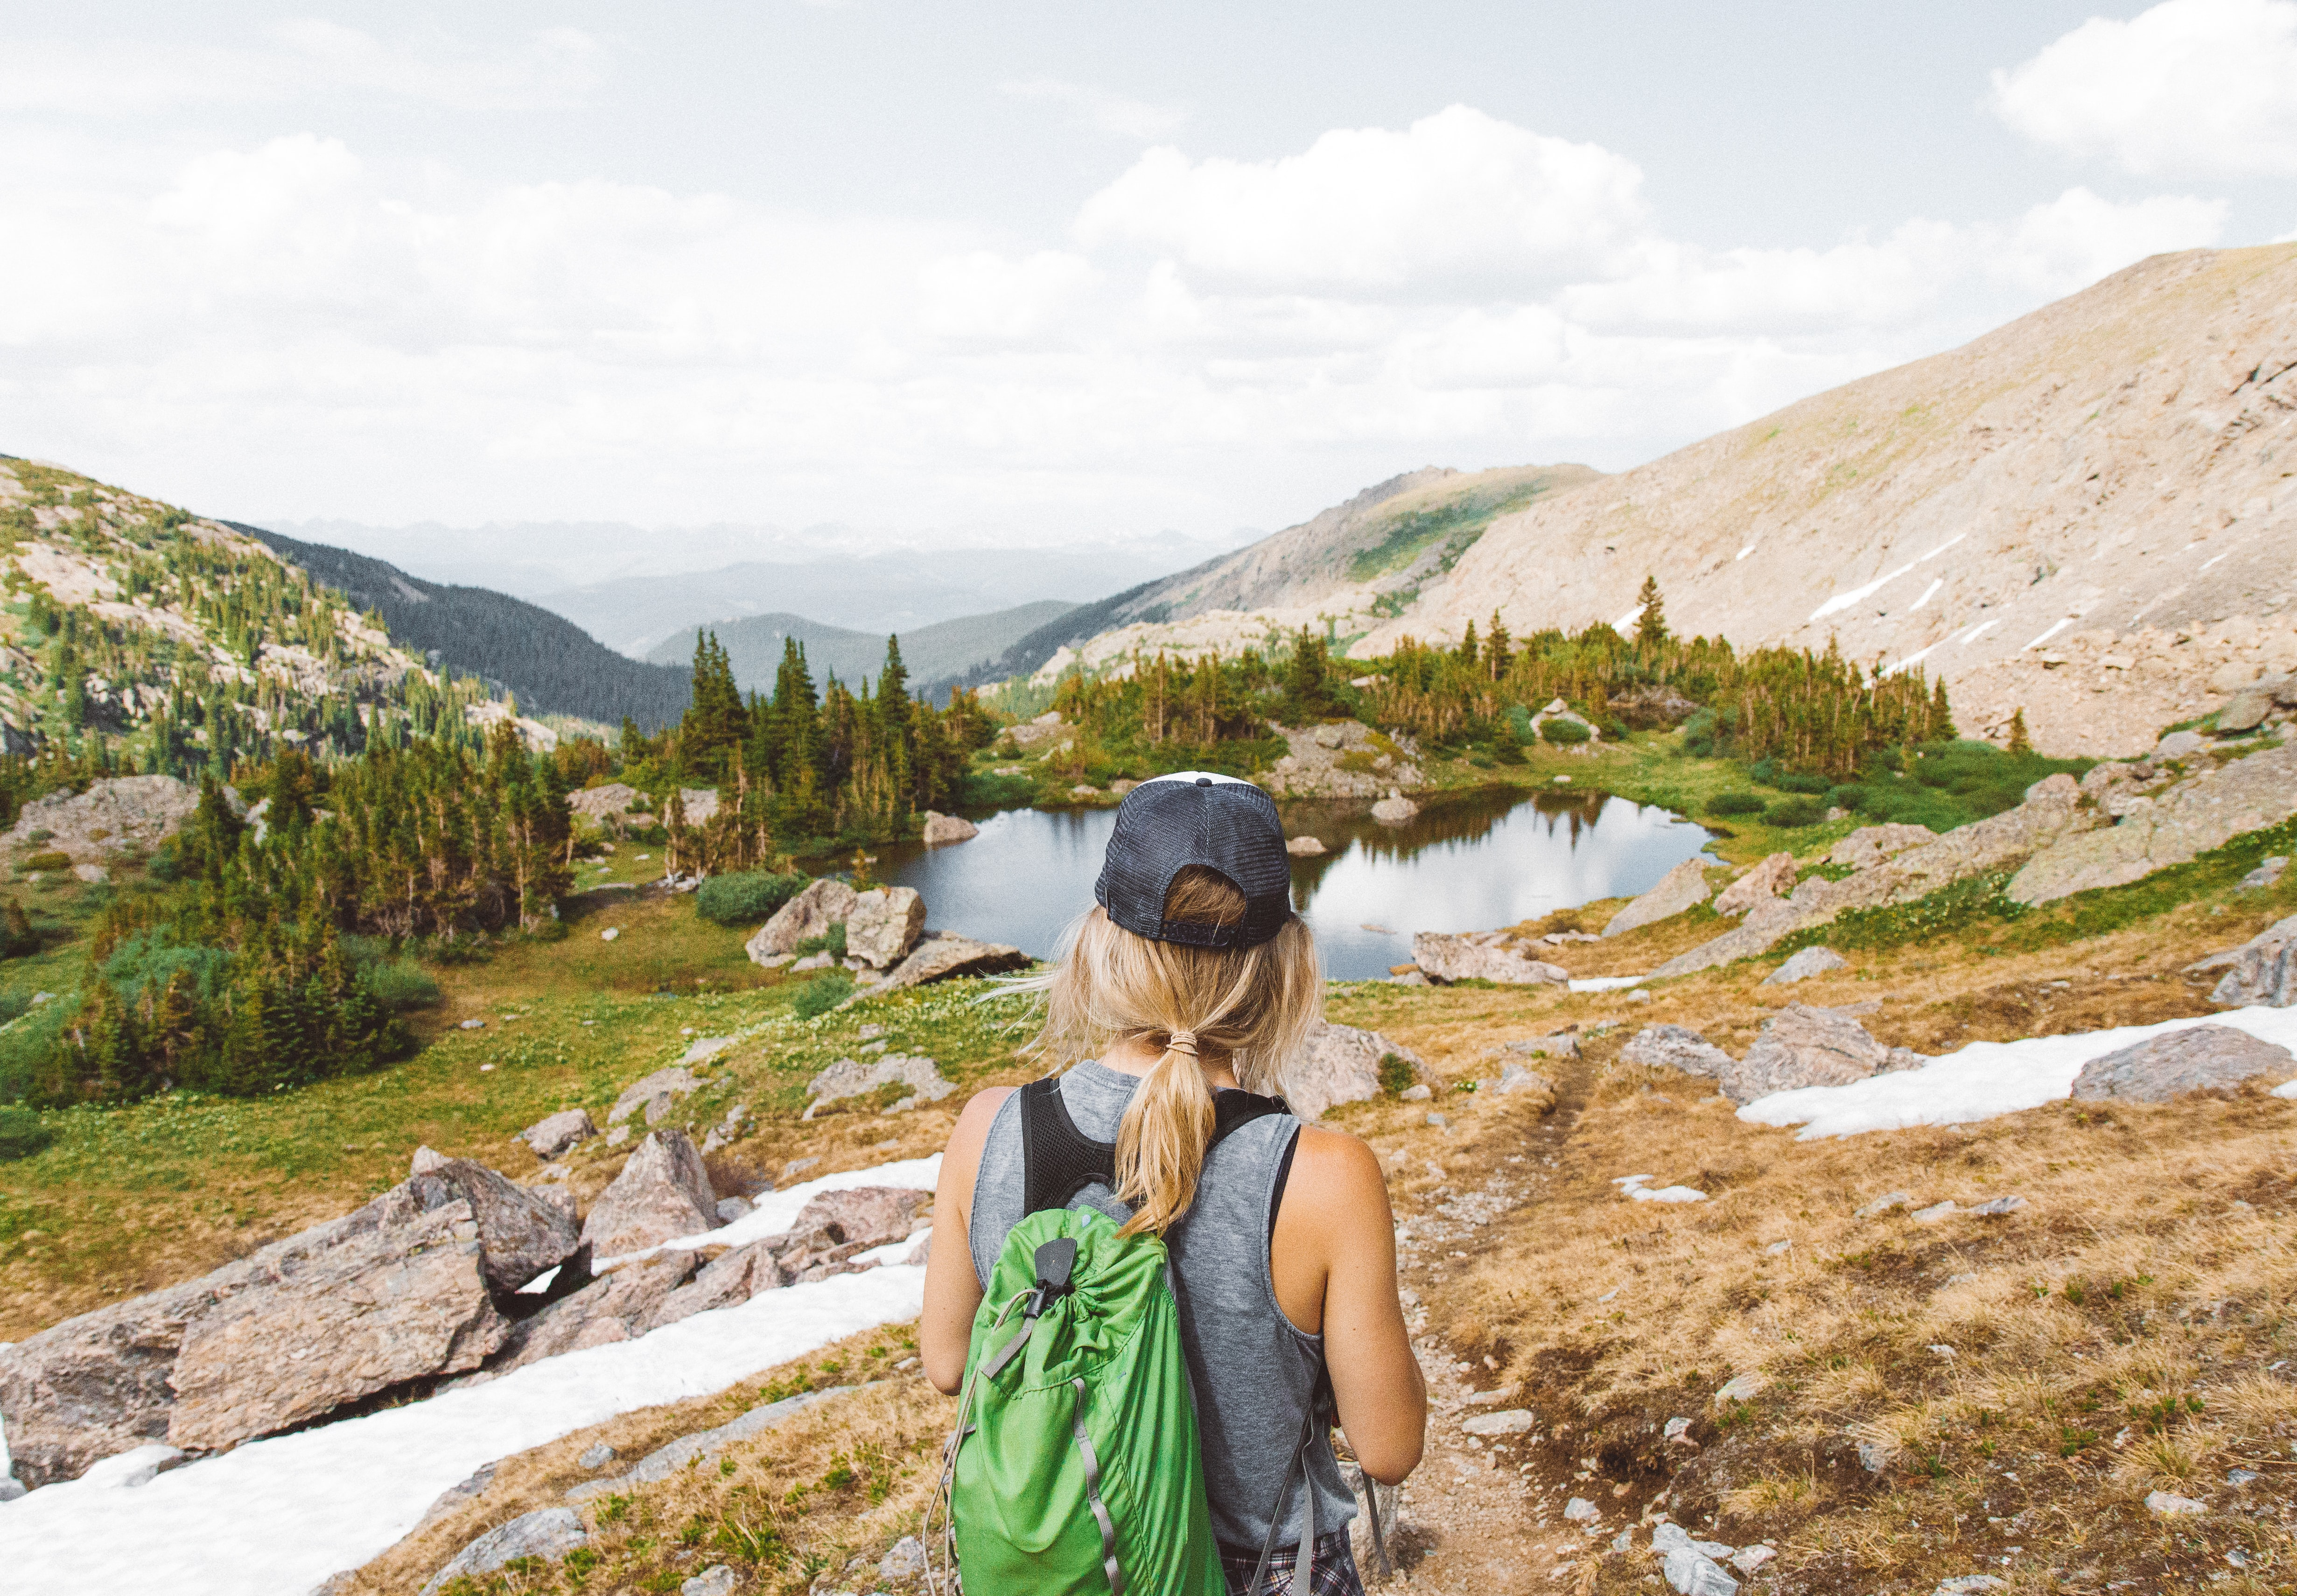 Woman looking out at a mountain landscape on a scenic hike